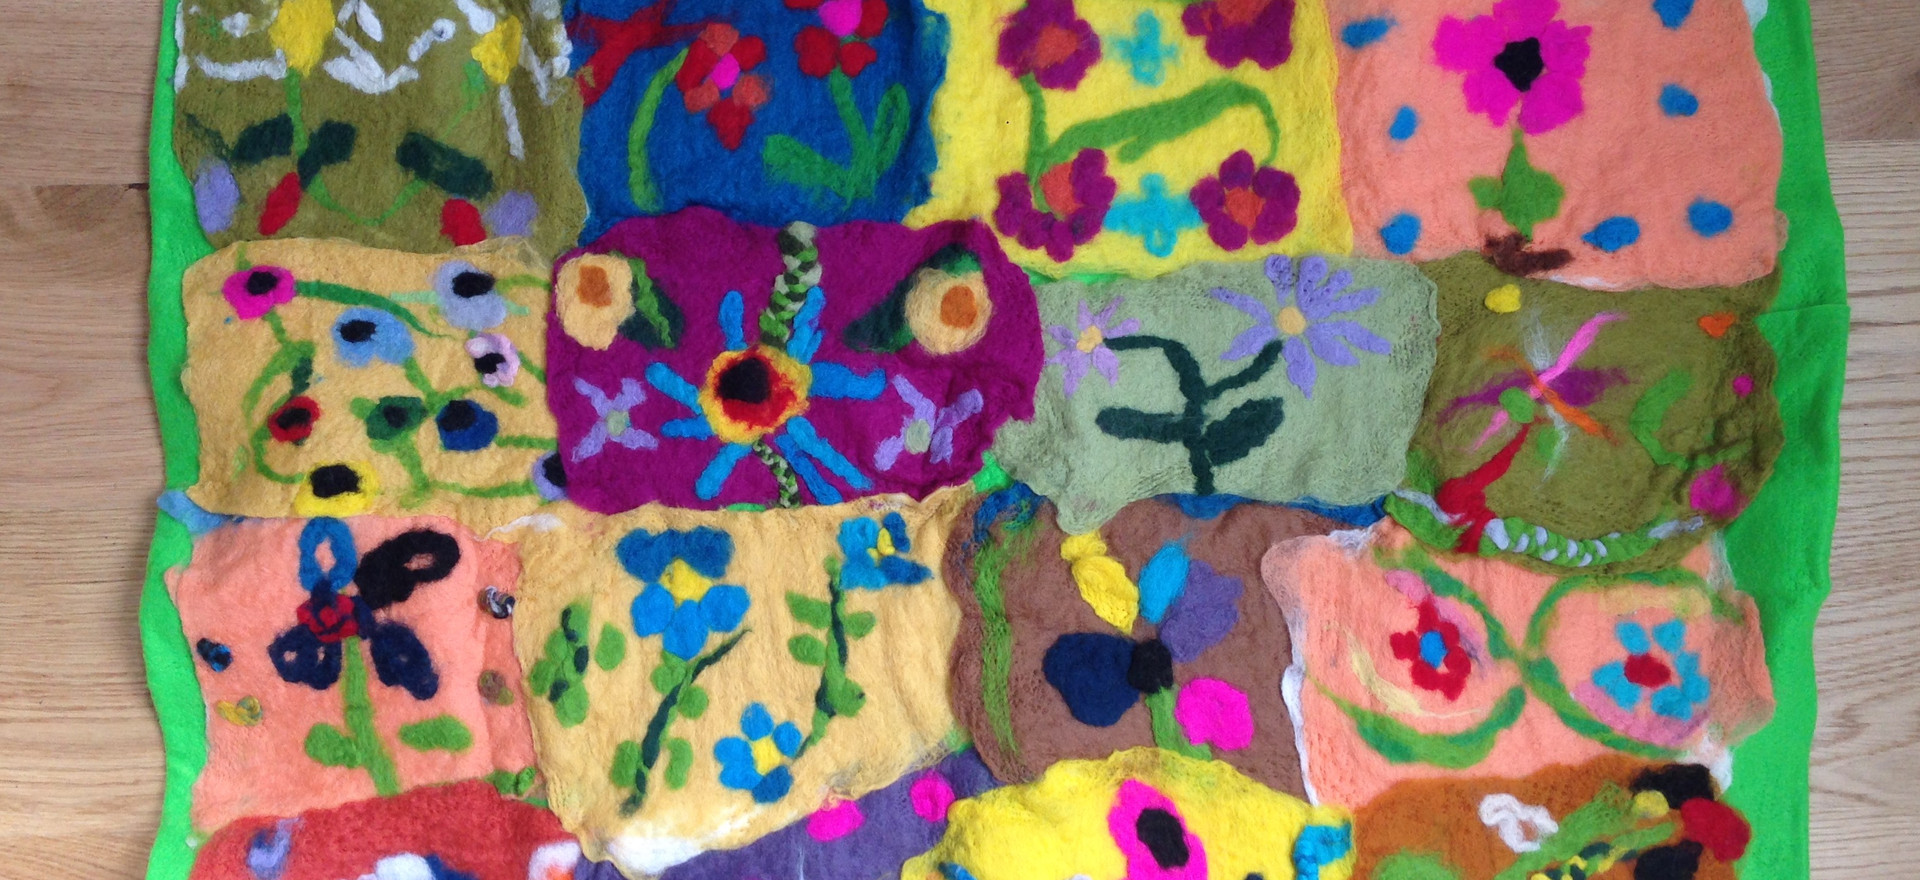 William Morris wall hanging created by the Year 5 children of St John the Baptist Primary School in Spalding.